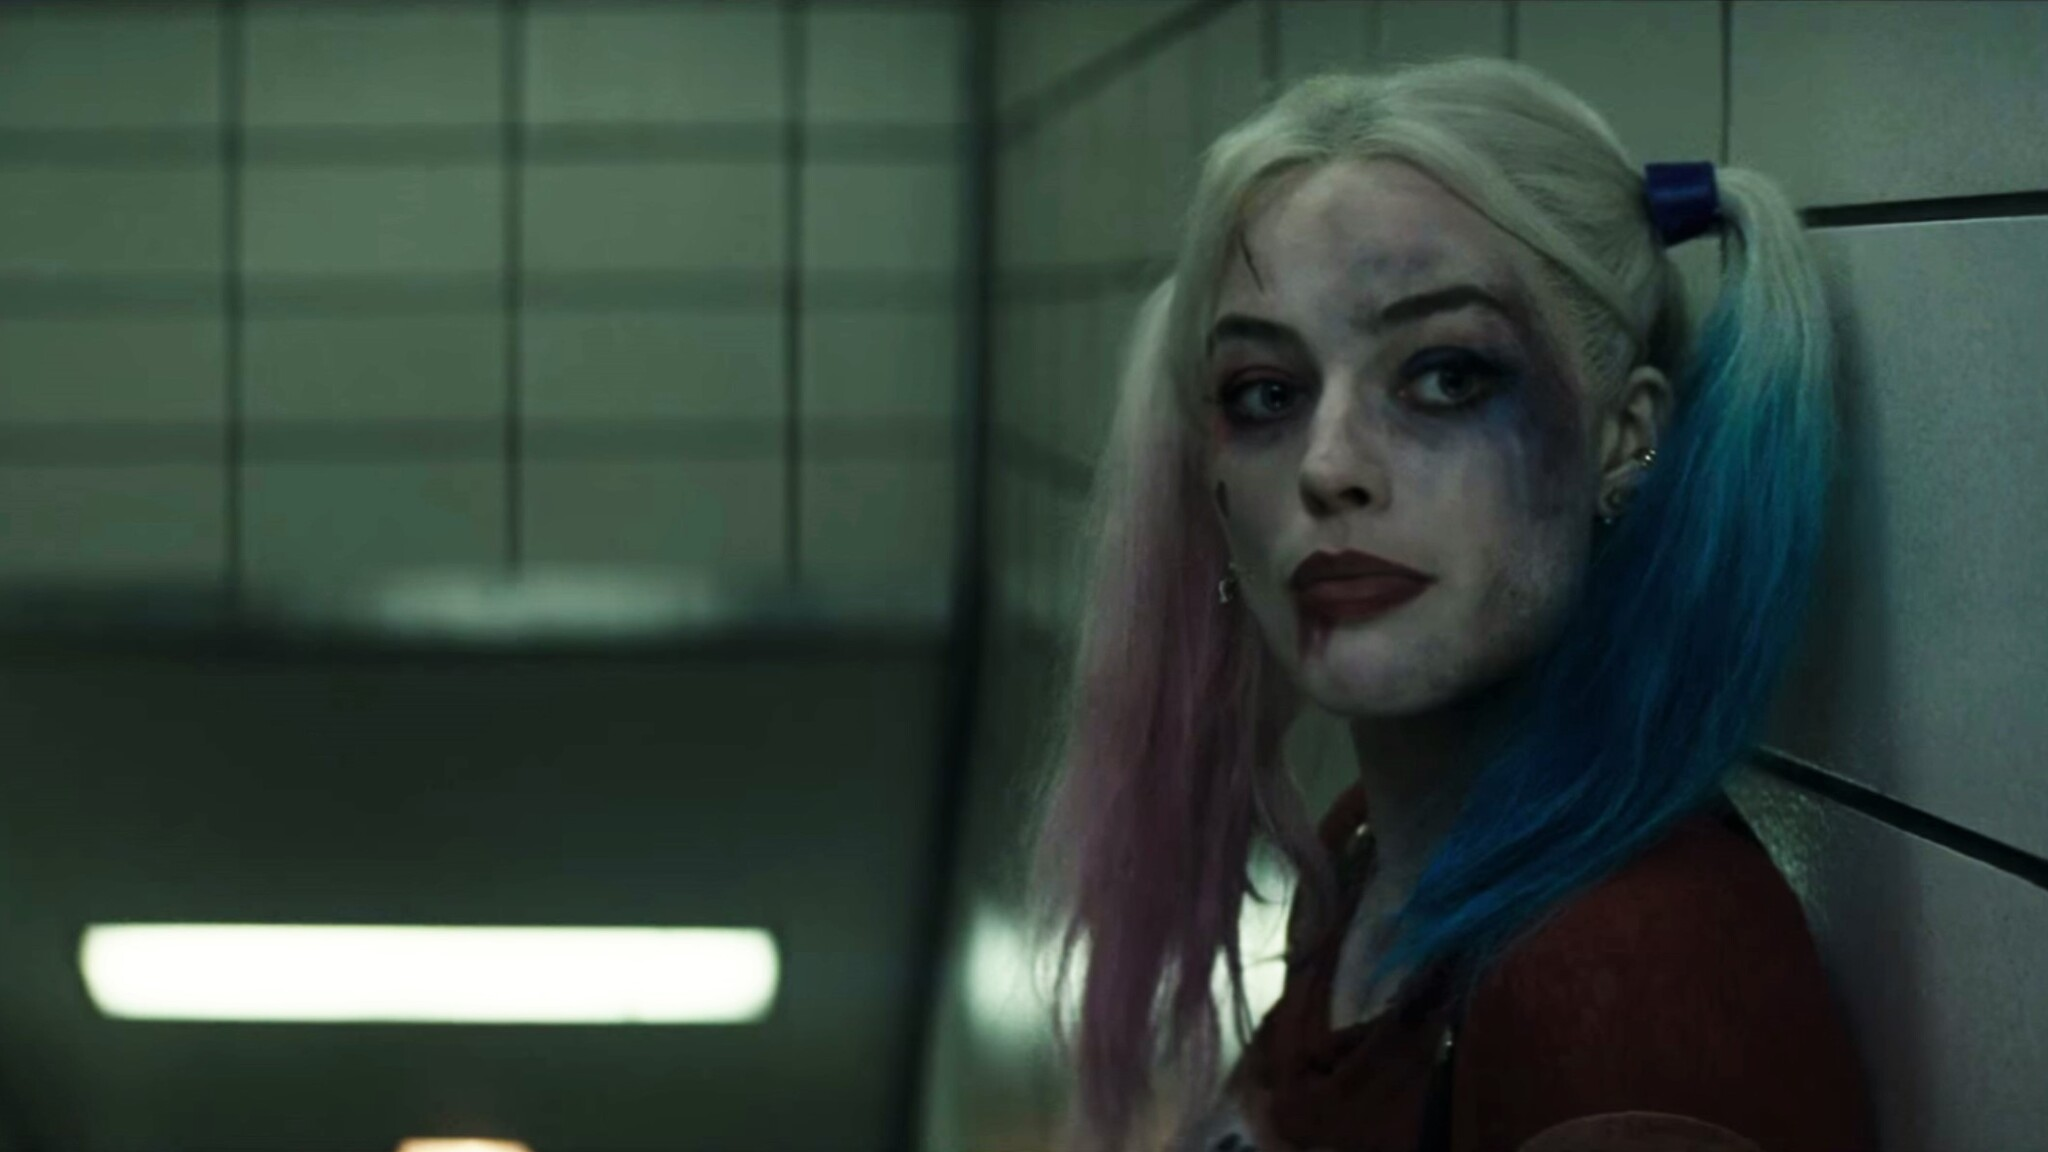 2048x1152 Harley Quinn Suicide Squad 2048x1152 Resolution